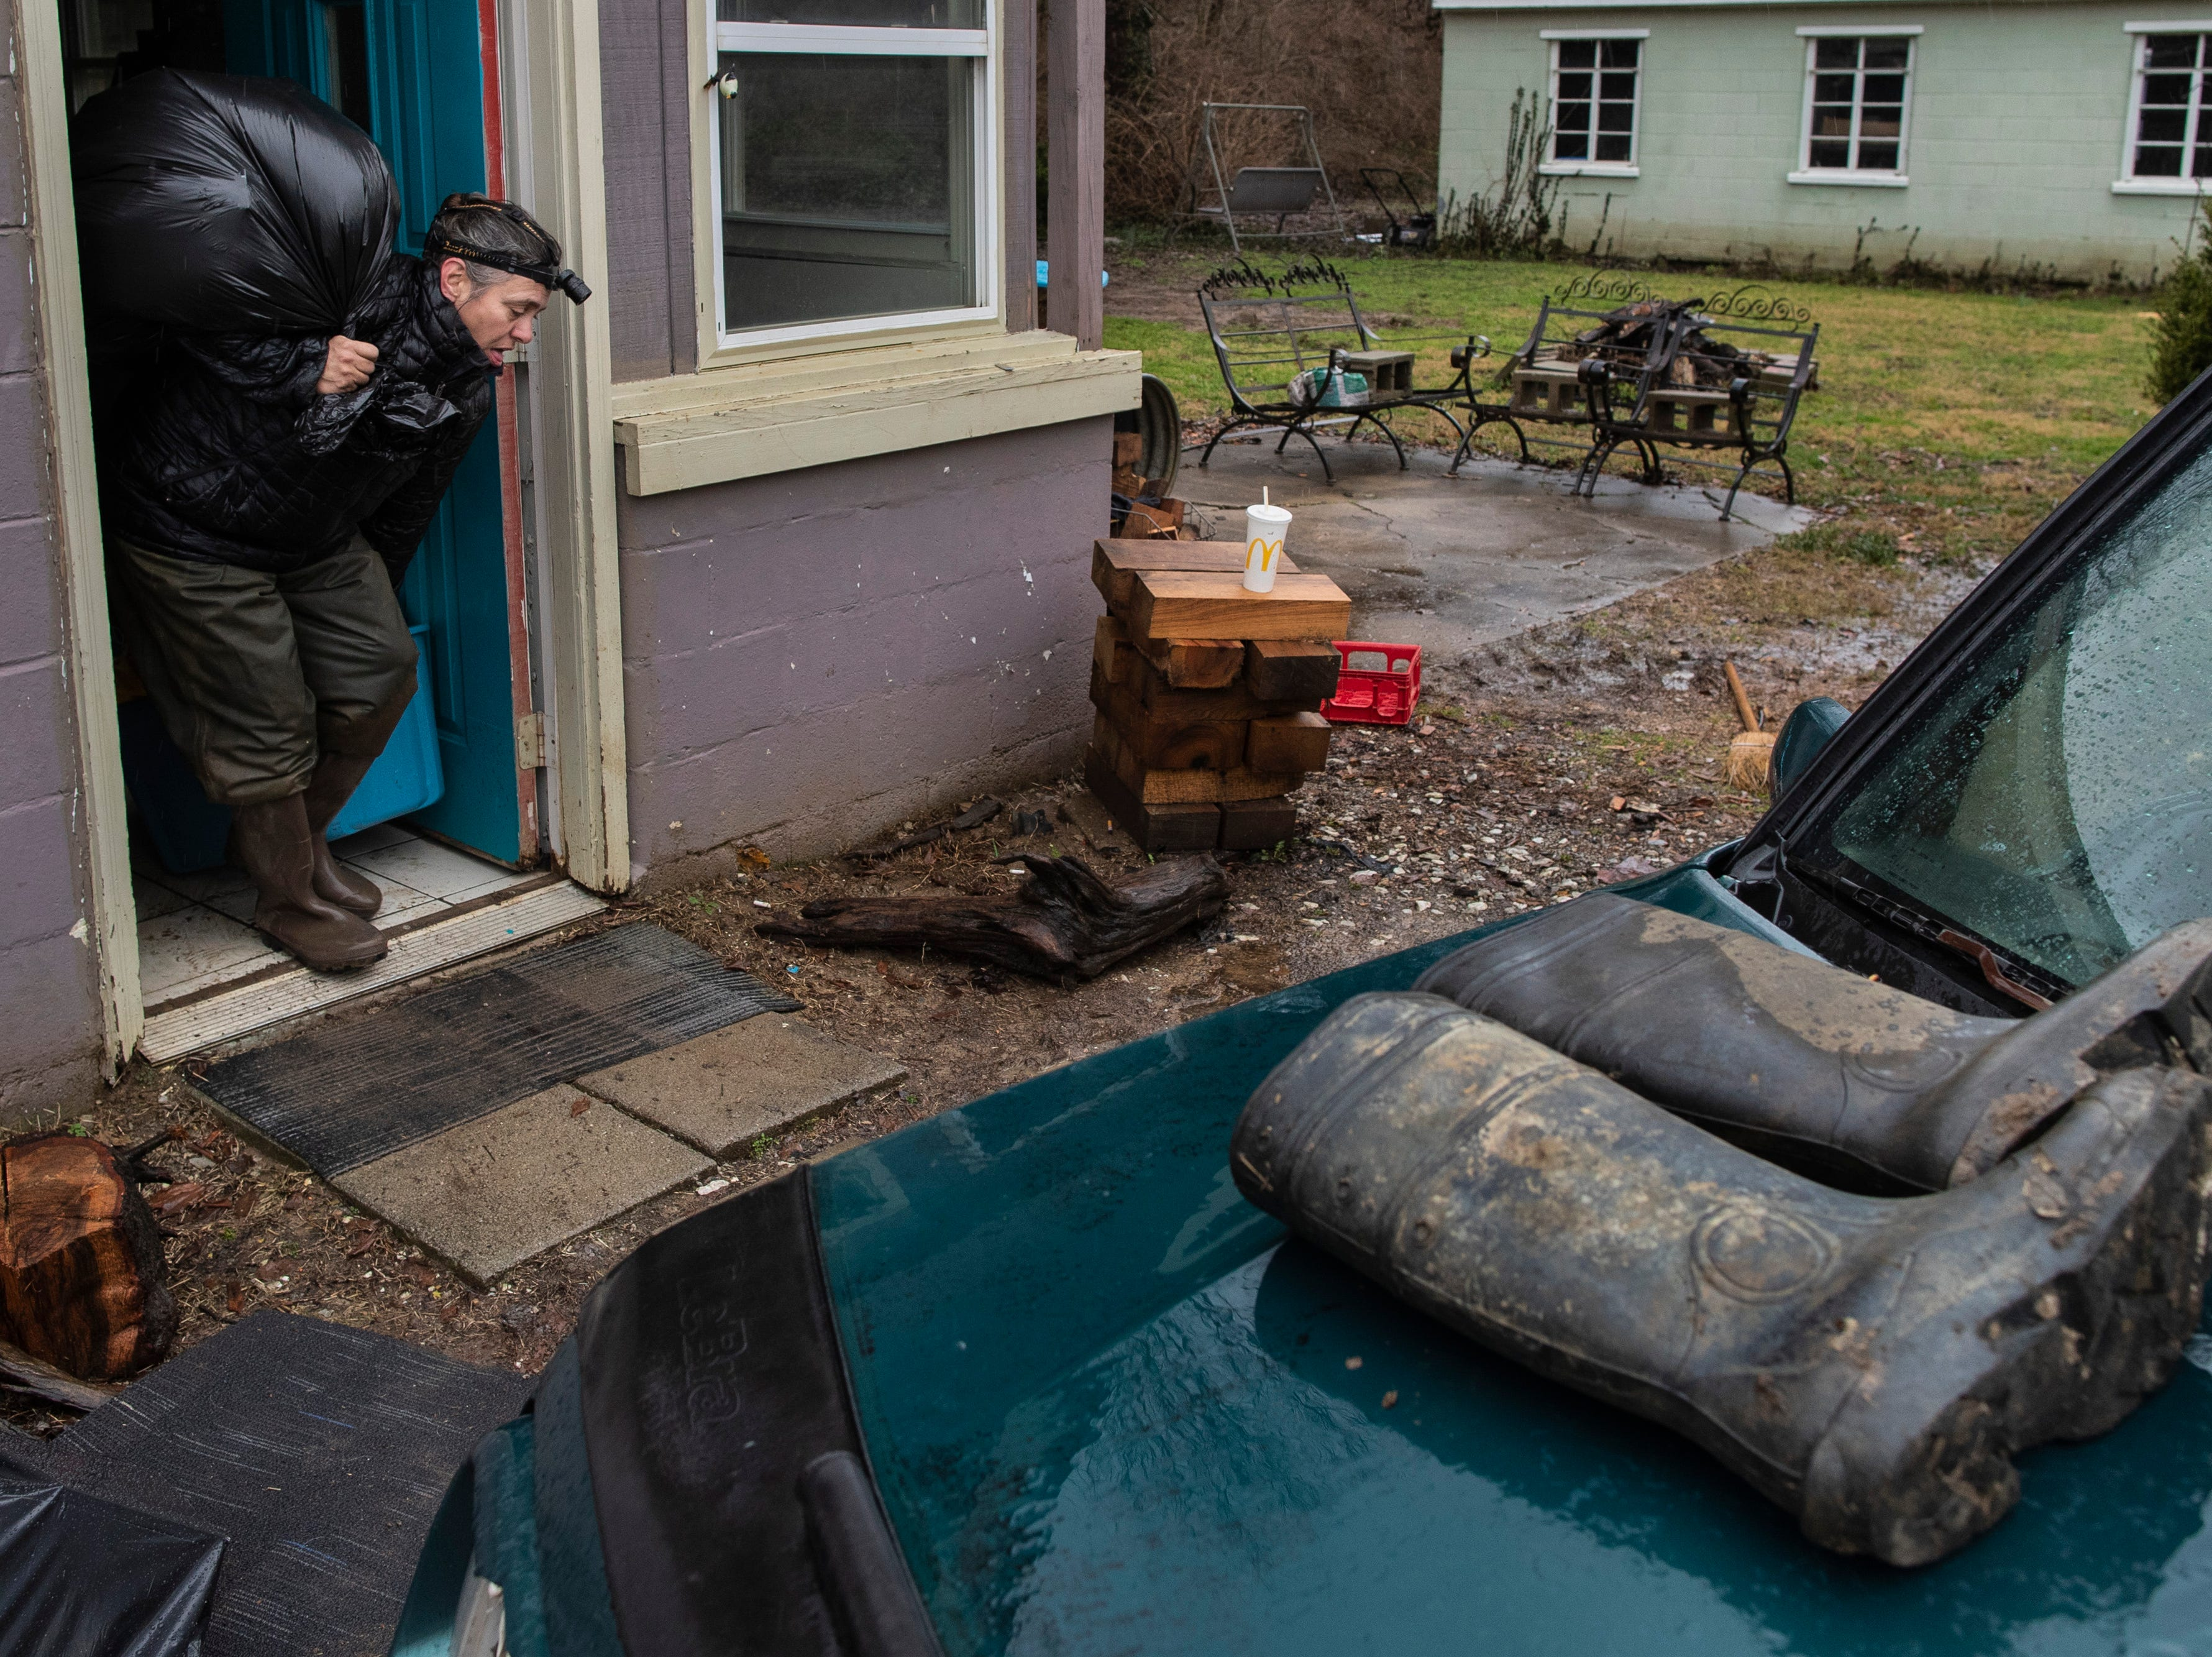 Gwennan Thomas helps her friend Chip Jordan load all of his belongings into his vehicle Tuesday to escape the high waters along River Road. Feb. 12, 2019